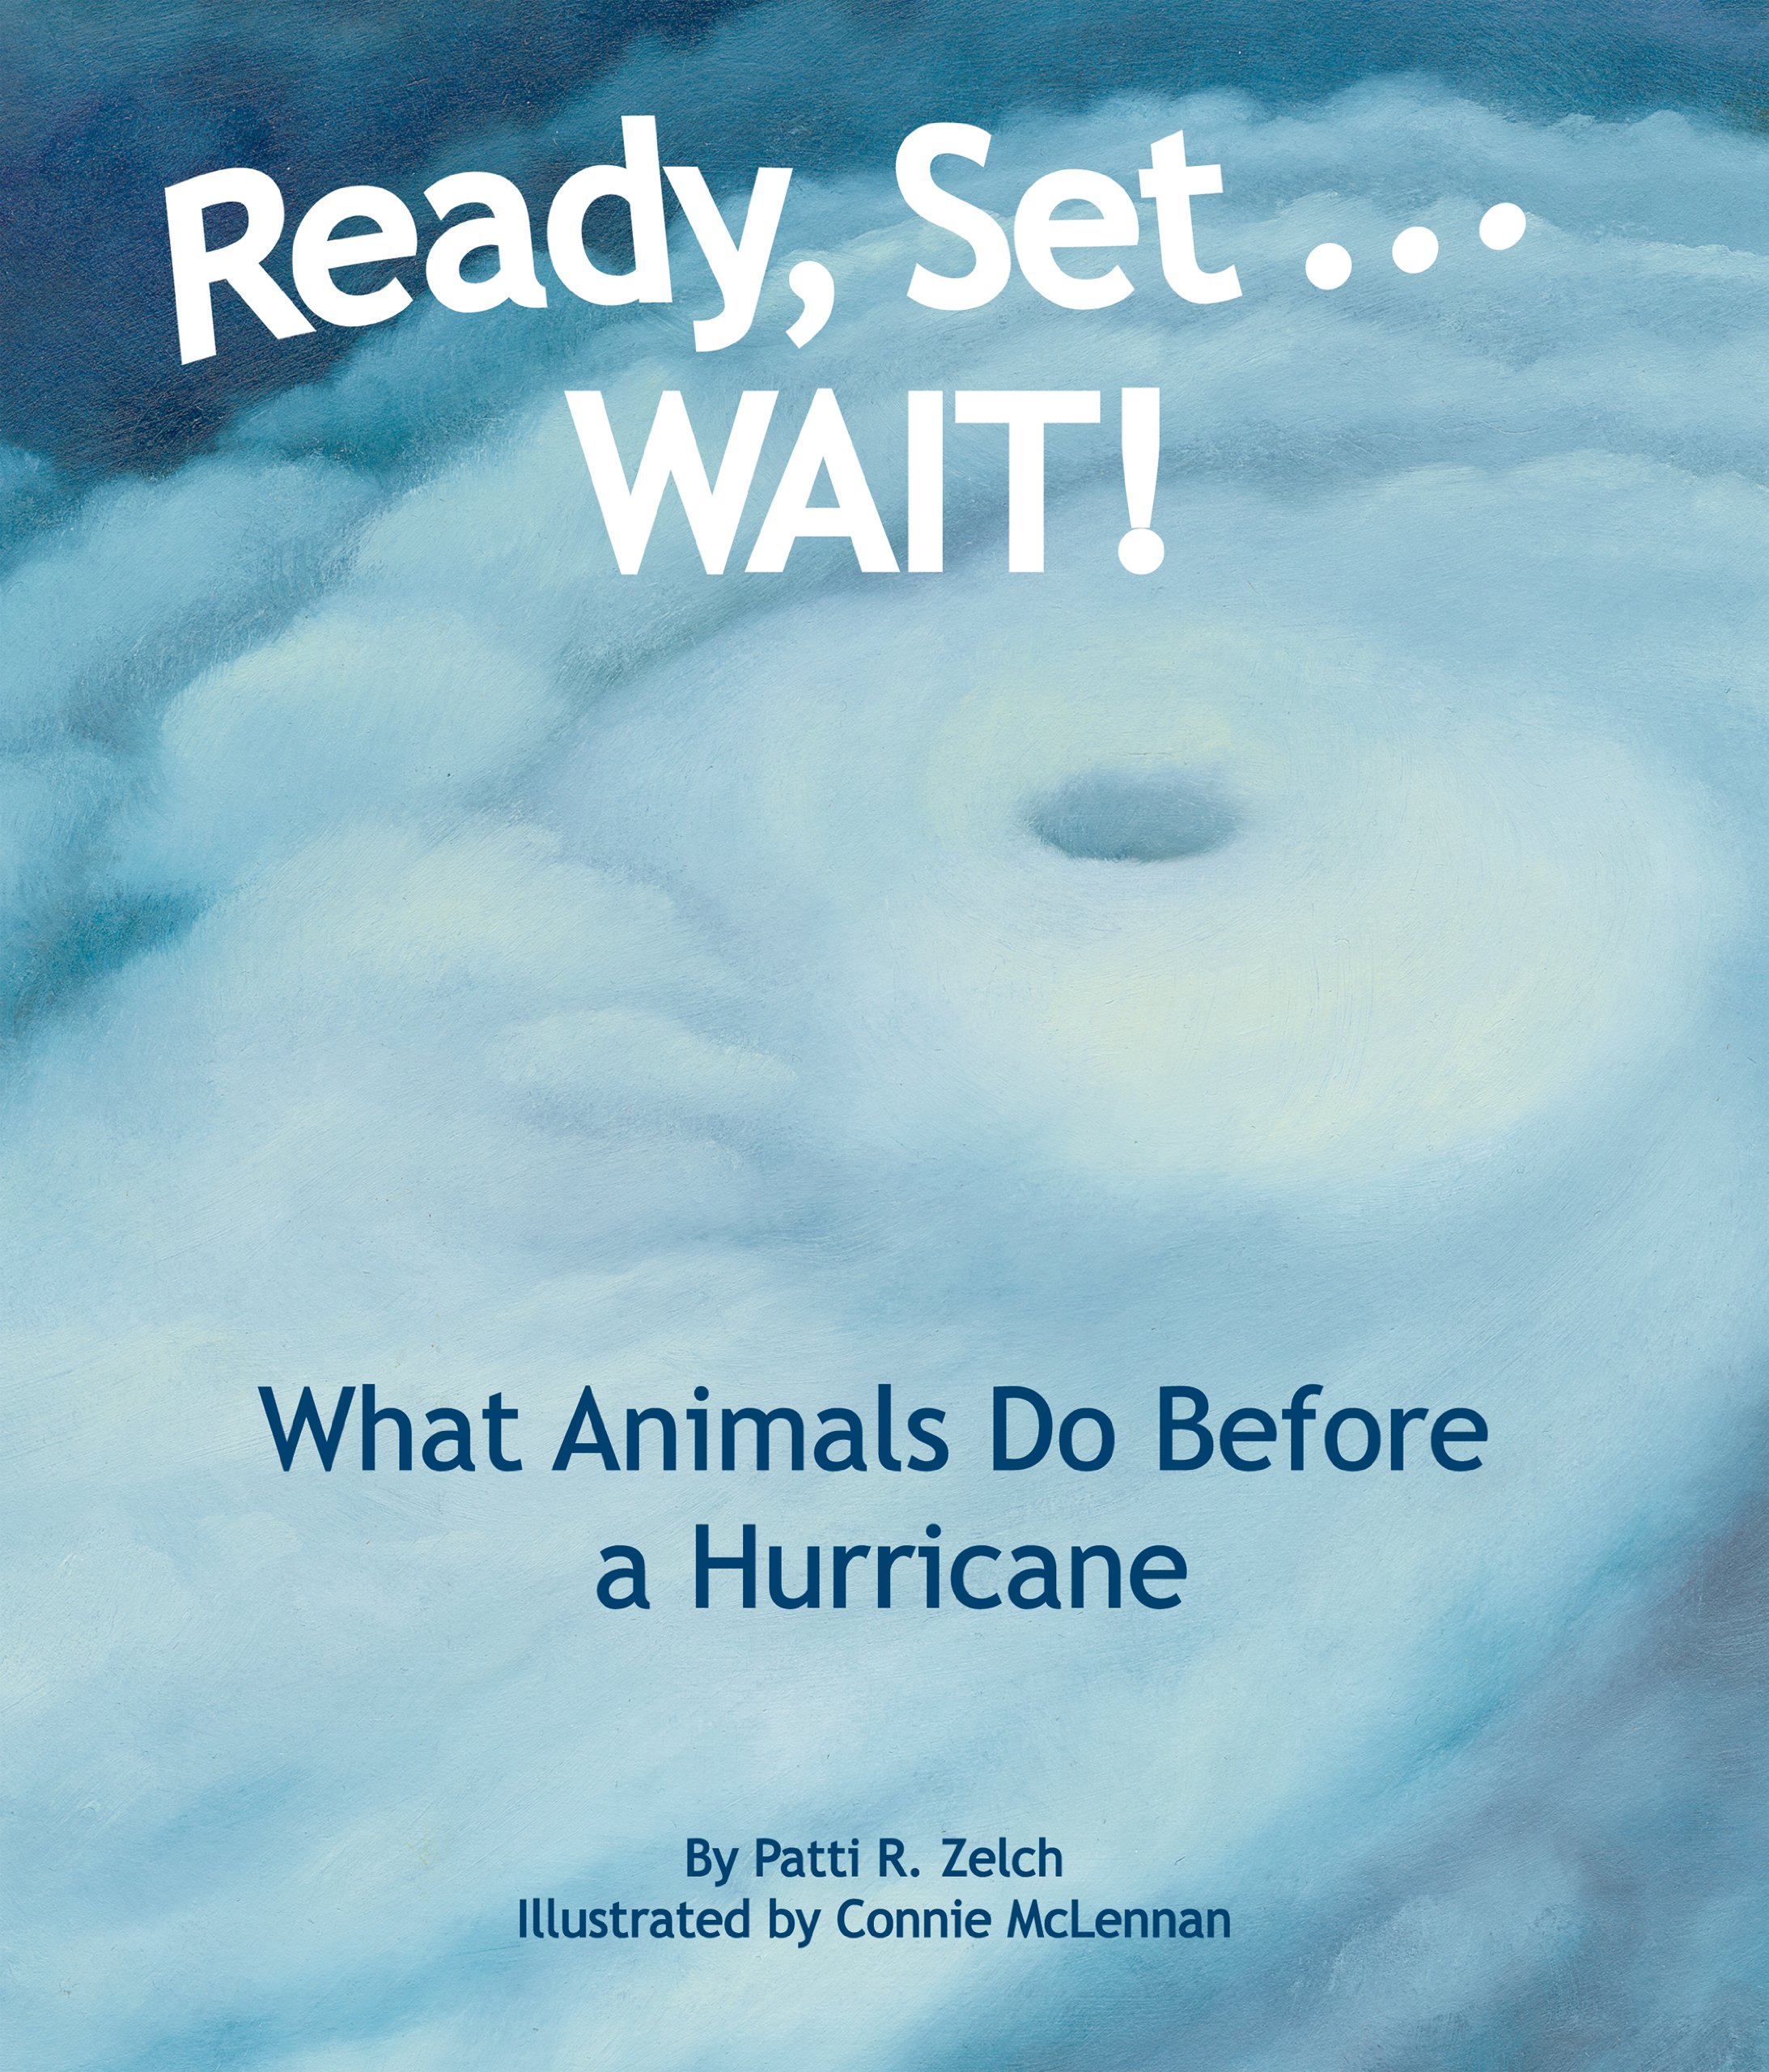 Ready, Set... Wait! What Animals Do Before a Hurricane